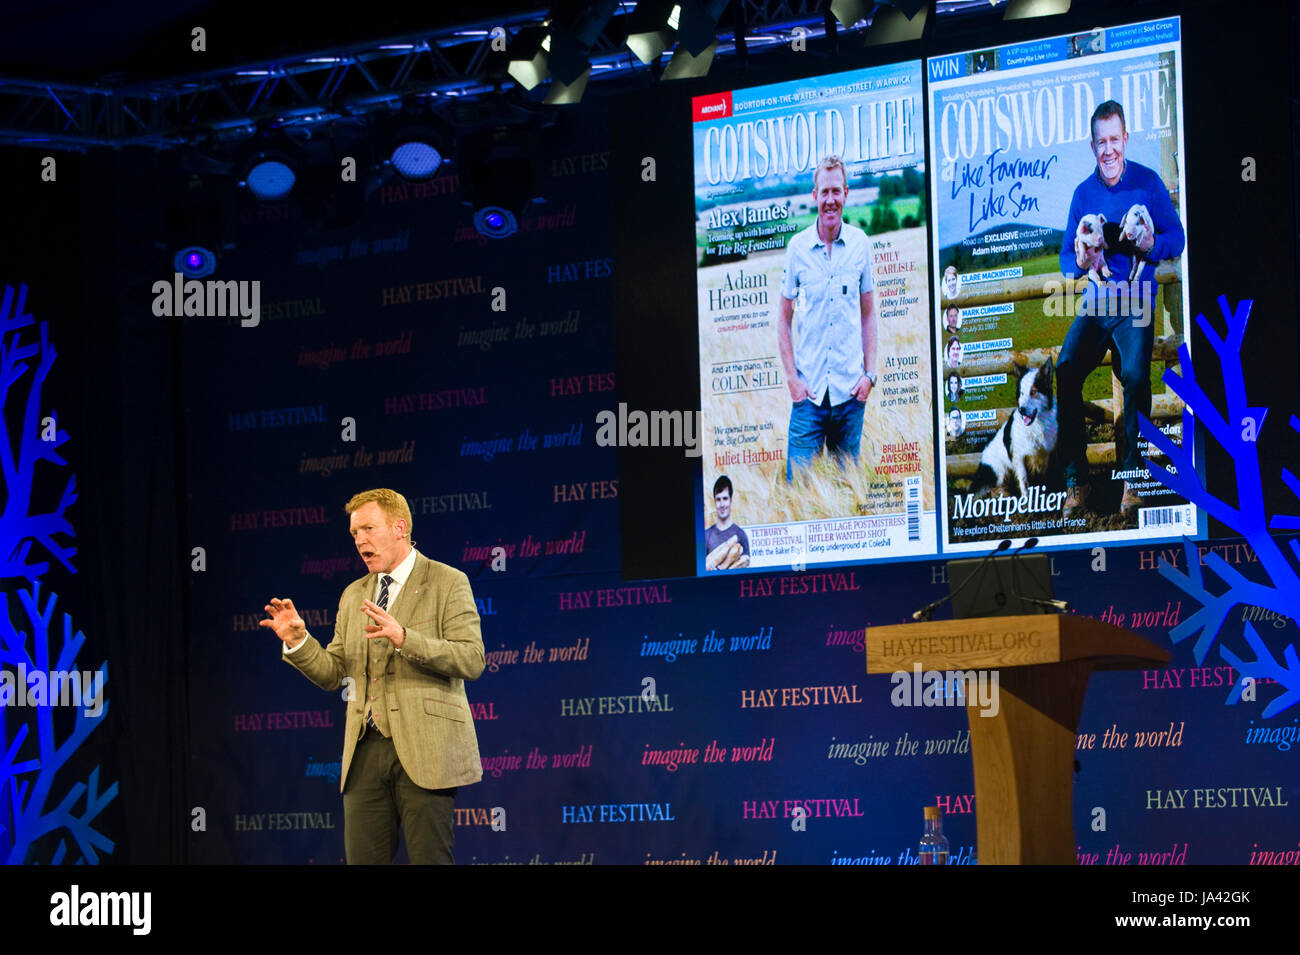 Adam Henson farmer & Countryfile presenter speaking about his life & career on stage at Hay Festival 2017 - Stock Image